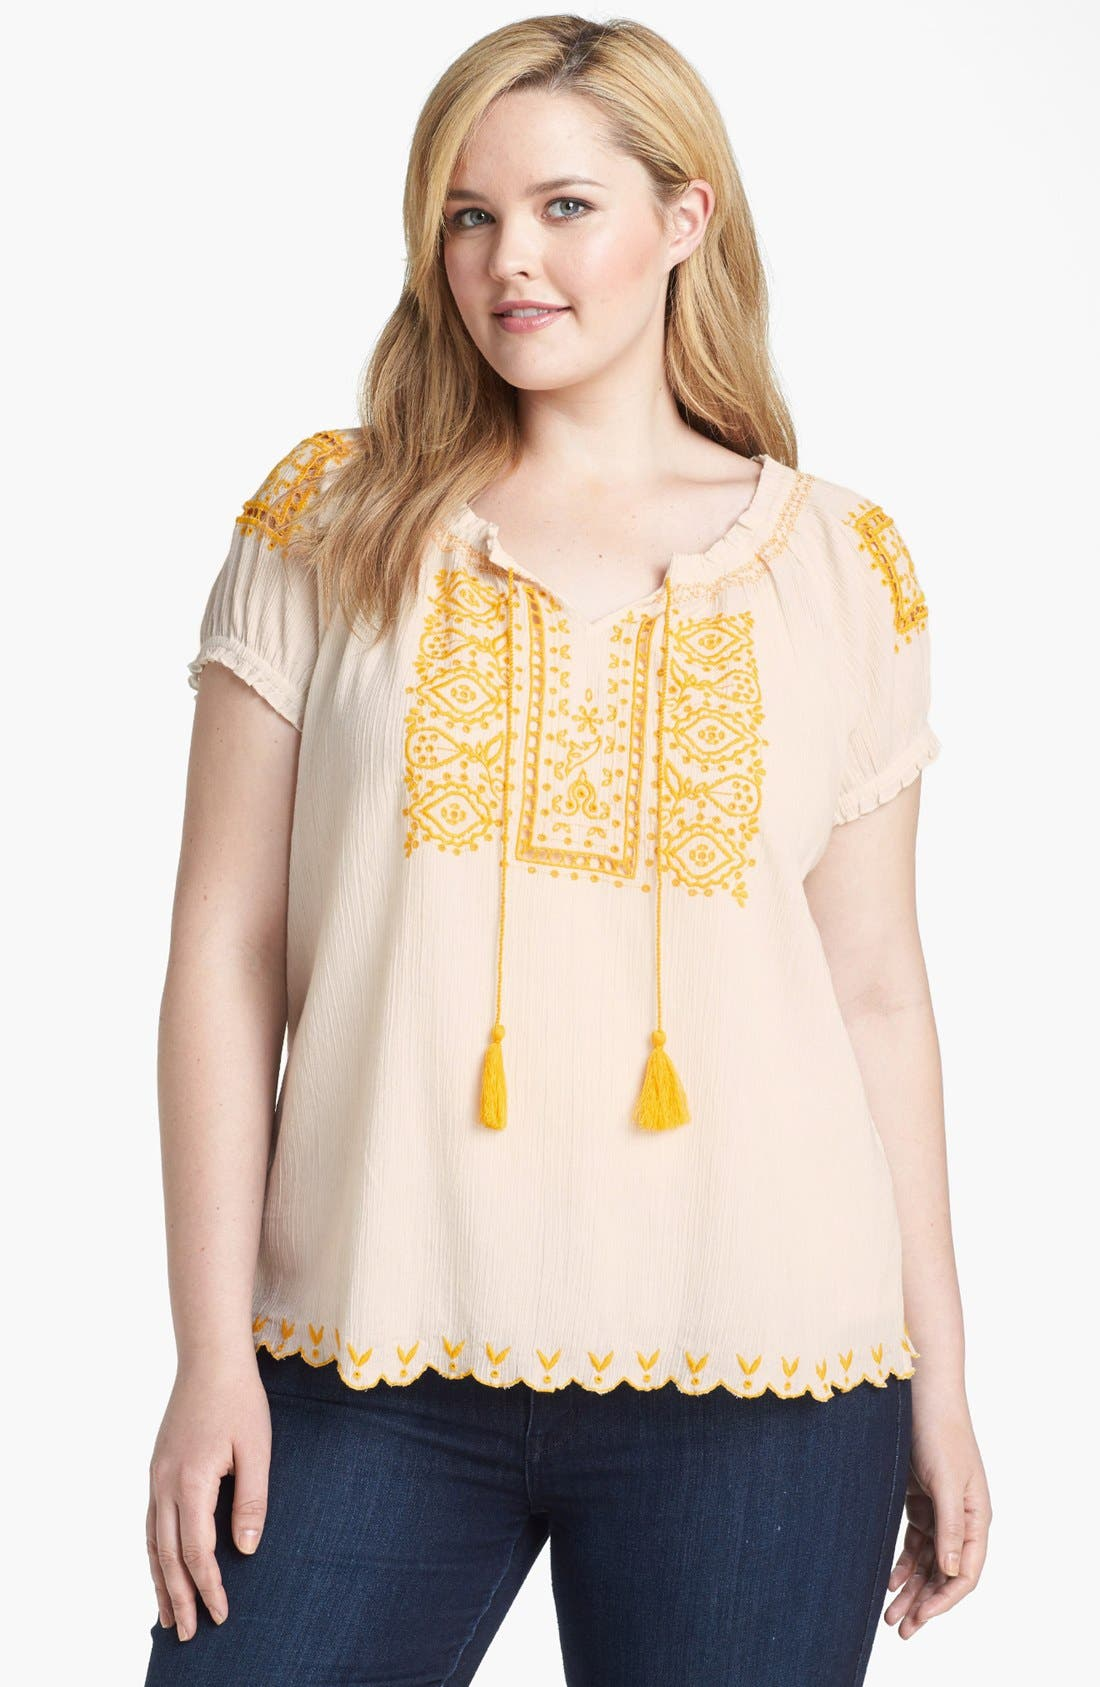 Main Image - Lucky Brand 'Sofi' Embroidered Eyelet Top (Plus Size)